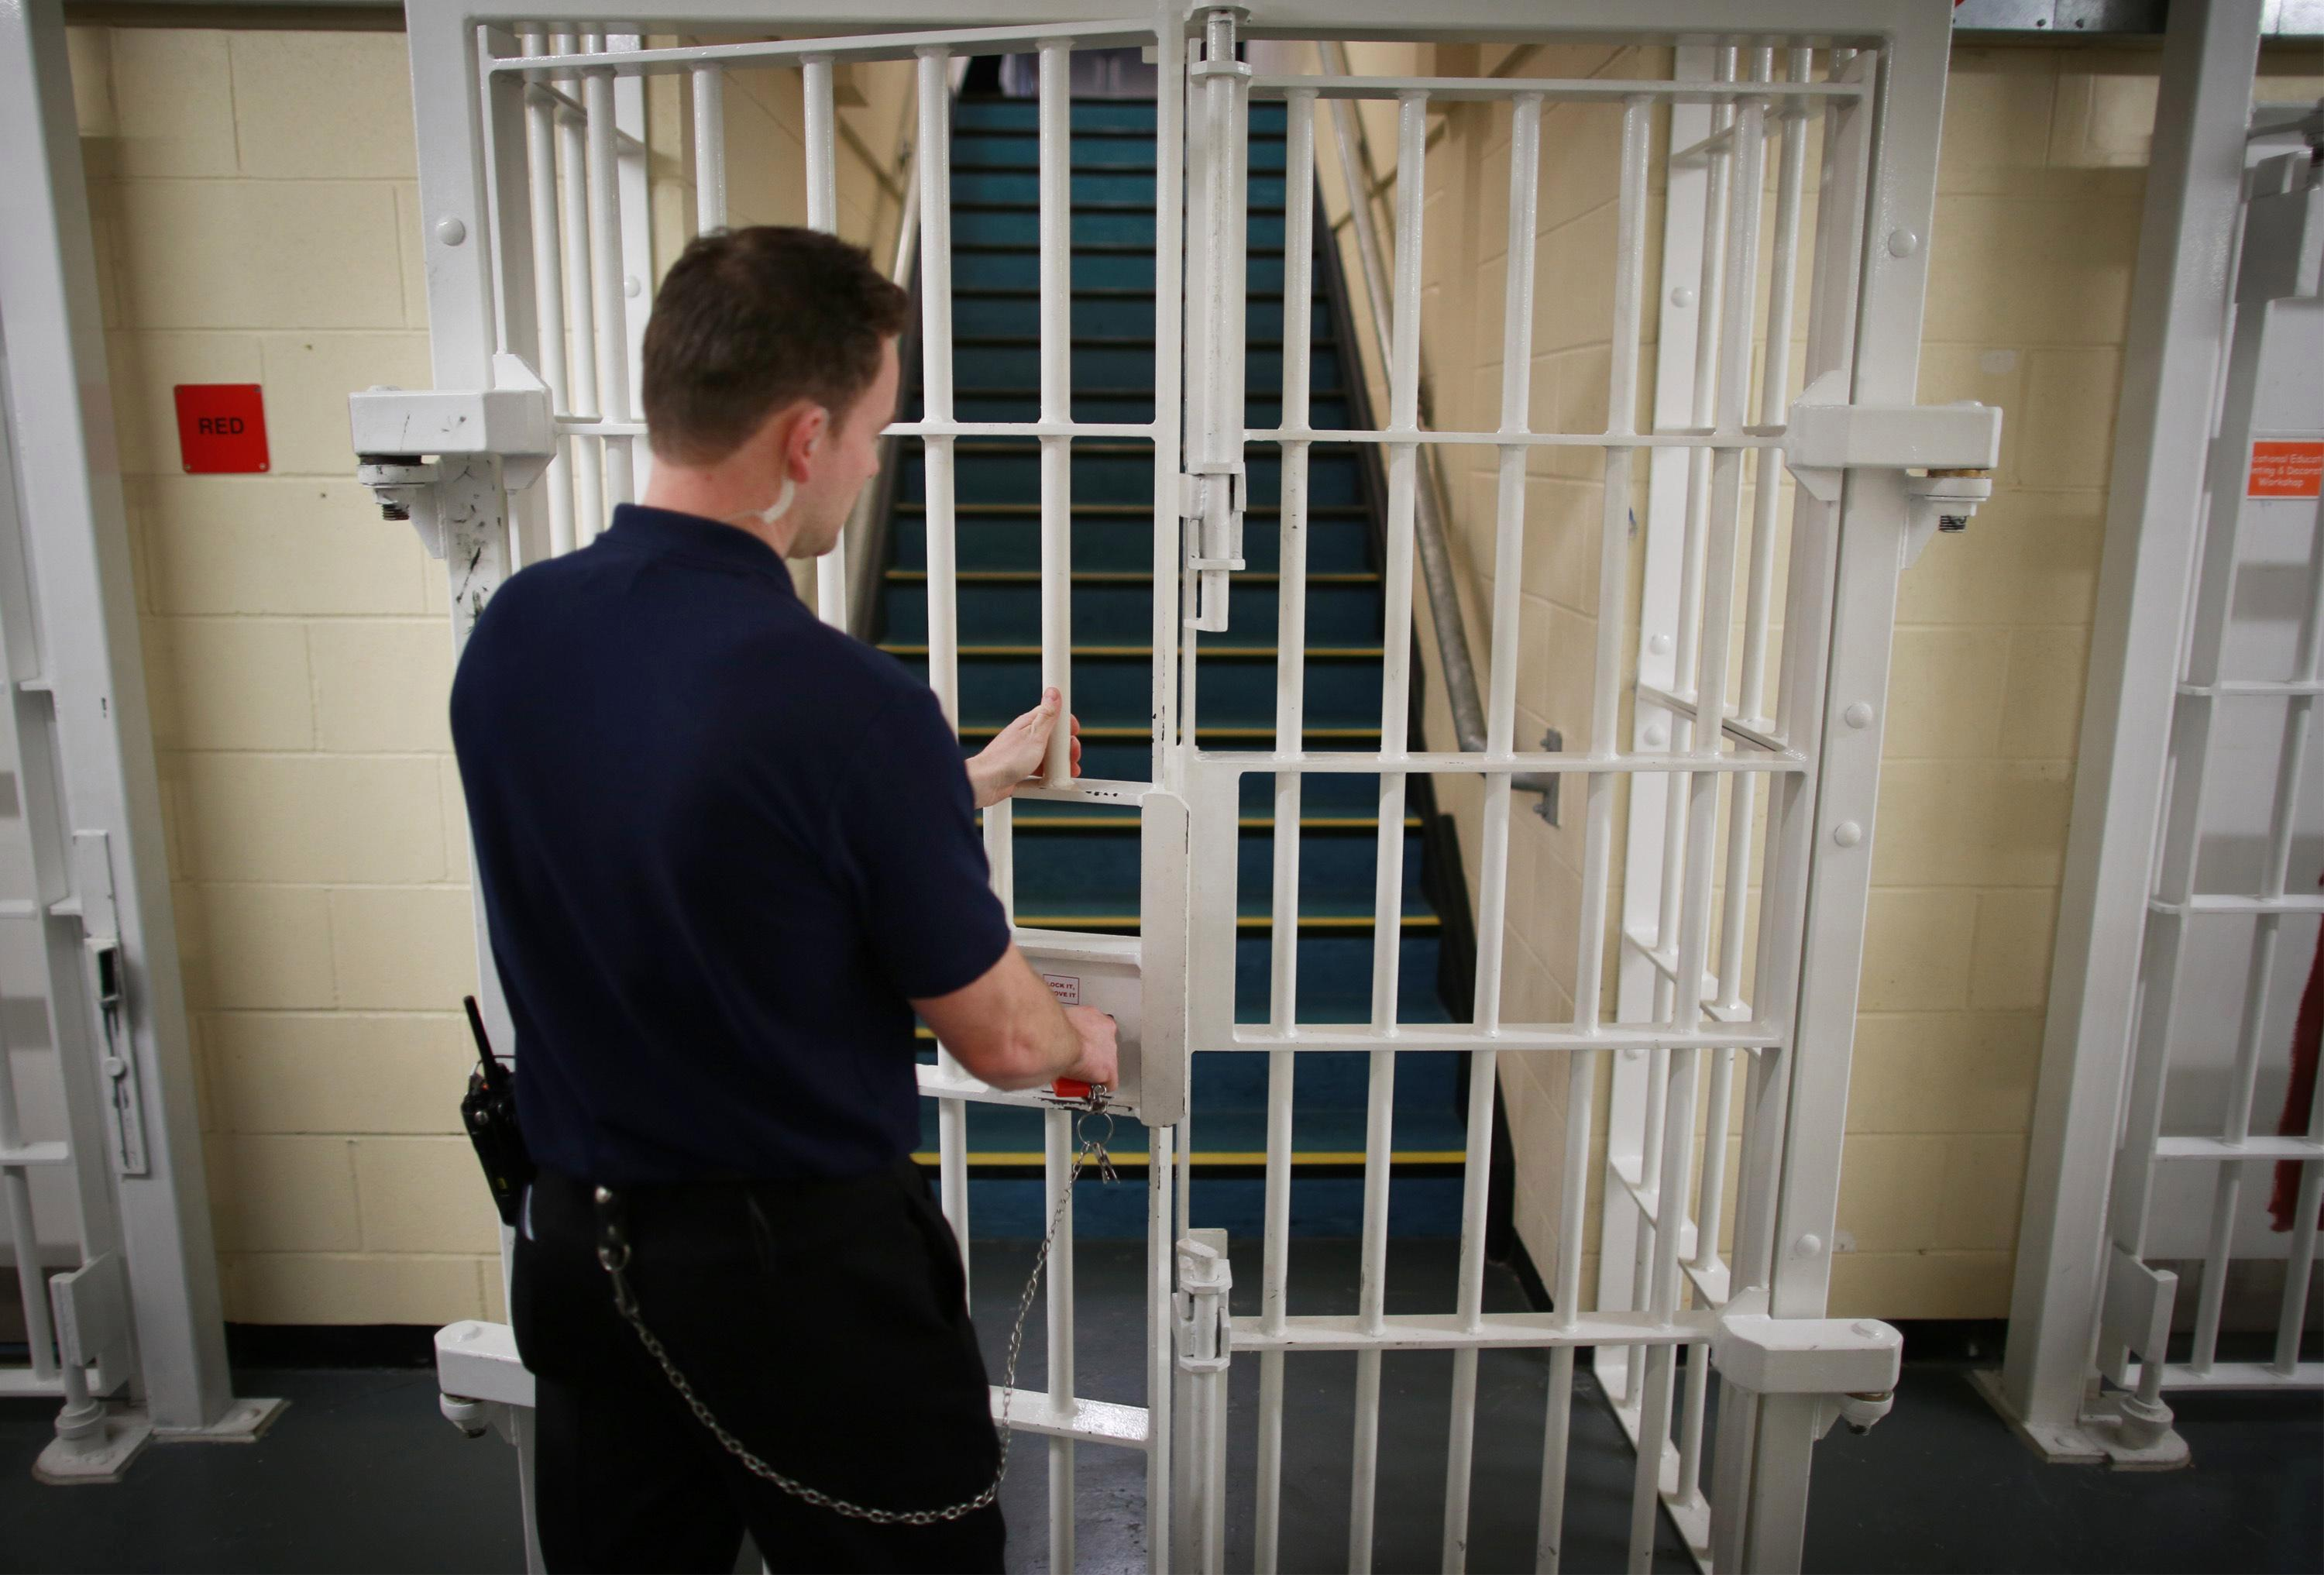 Kingpins running drugs gangs from their cell will be moved to top security jails alongside terrorists and murderers under new Government crackdown